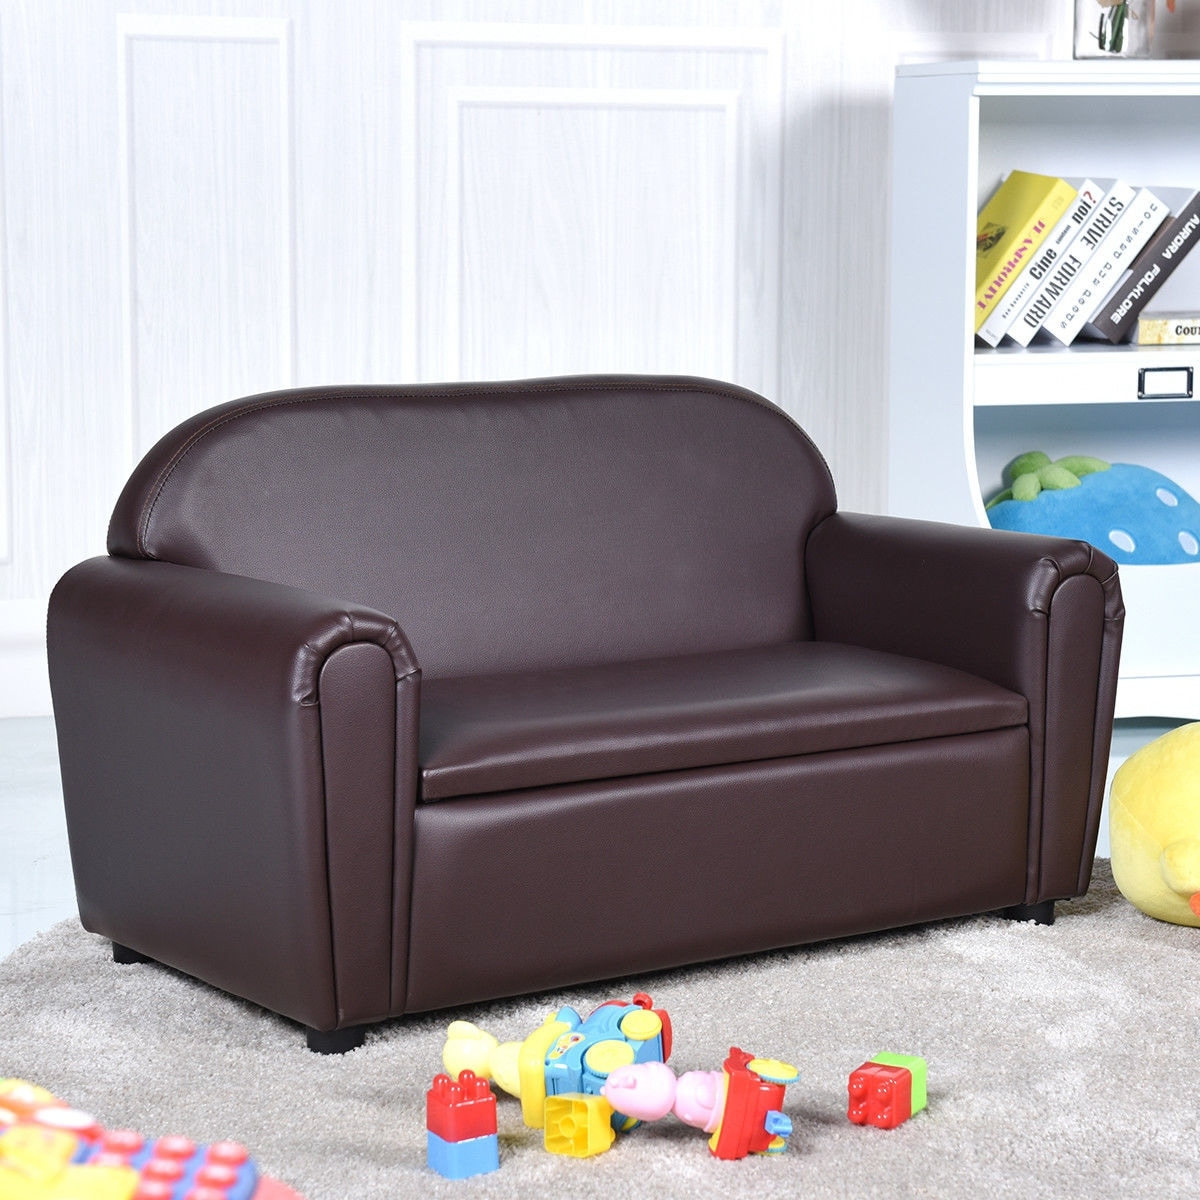 Sofa Armrest Chair Lounge Couch